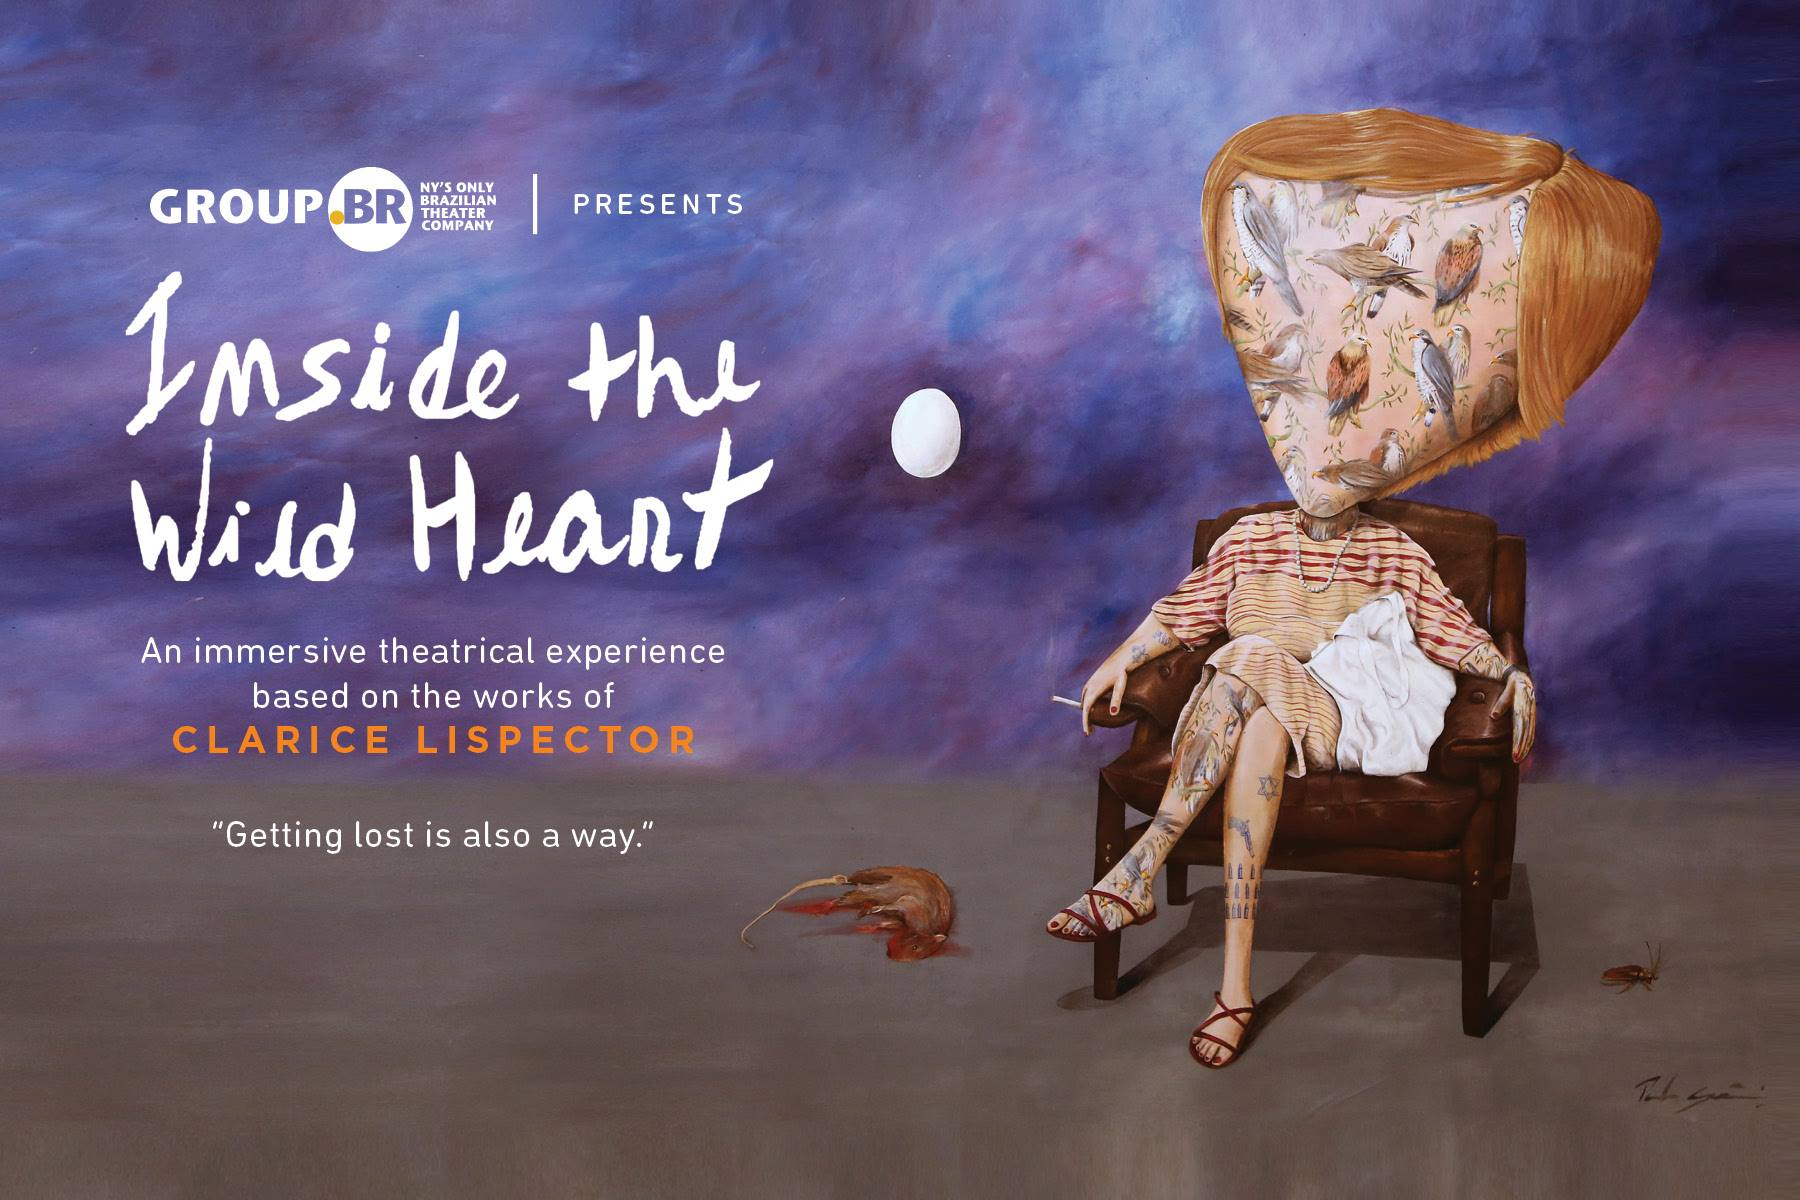 Group .BR's Inside the Wild Heart debuts on October 18, 2018 at AiCH Studio